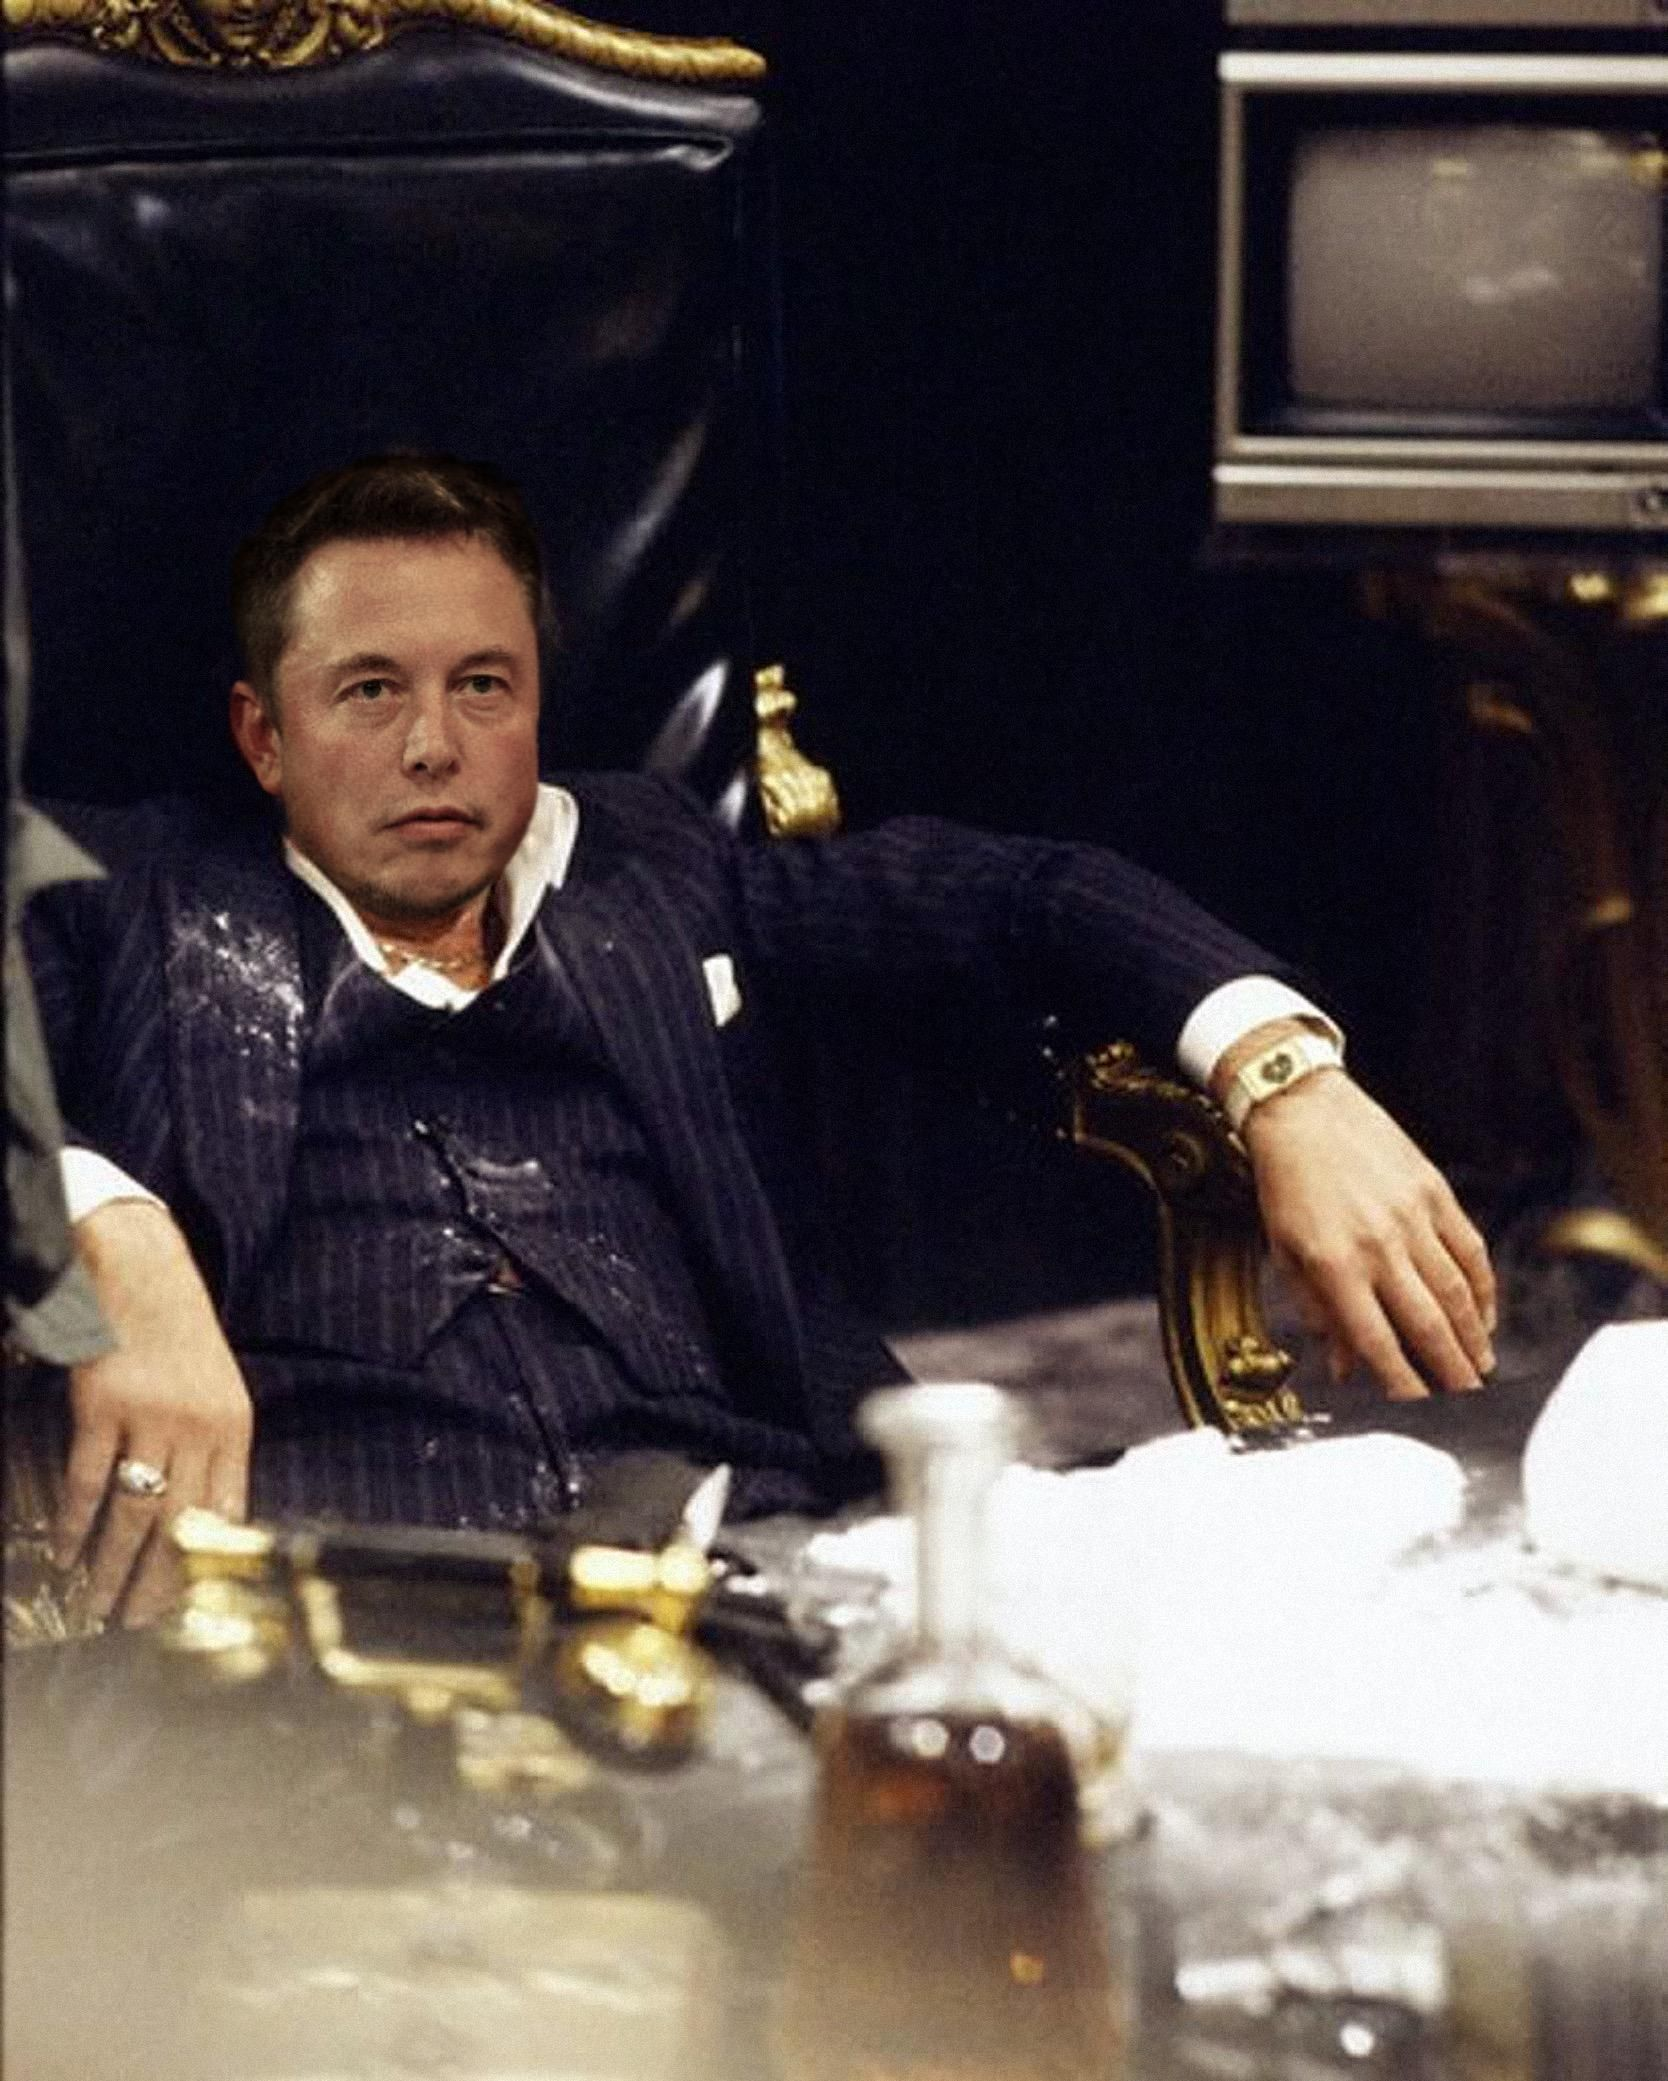 Leaked photo from latest Tesla Board meeting.